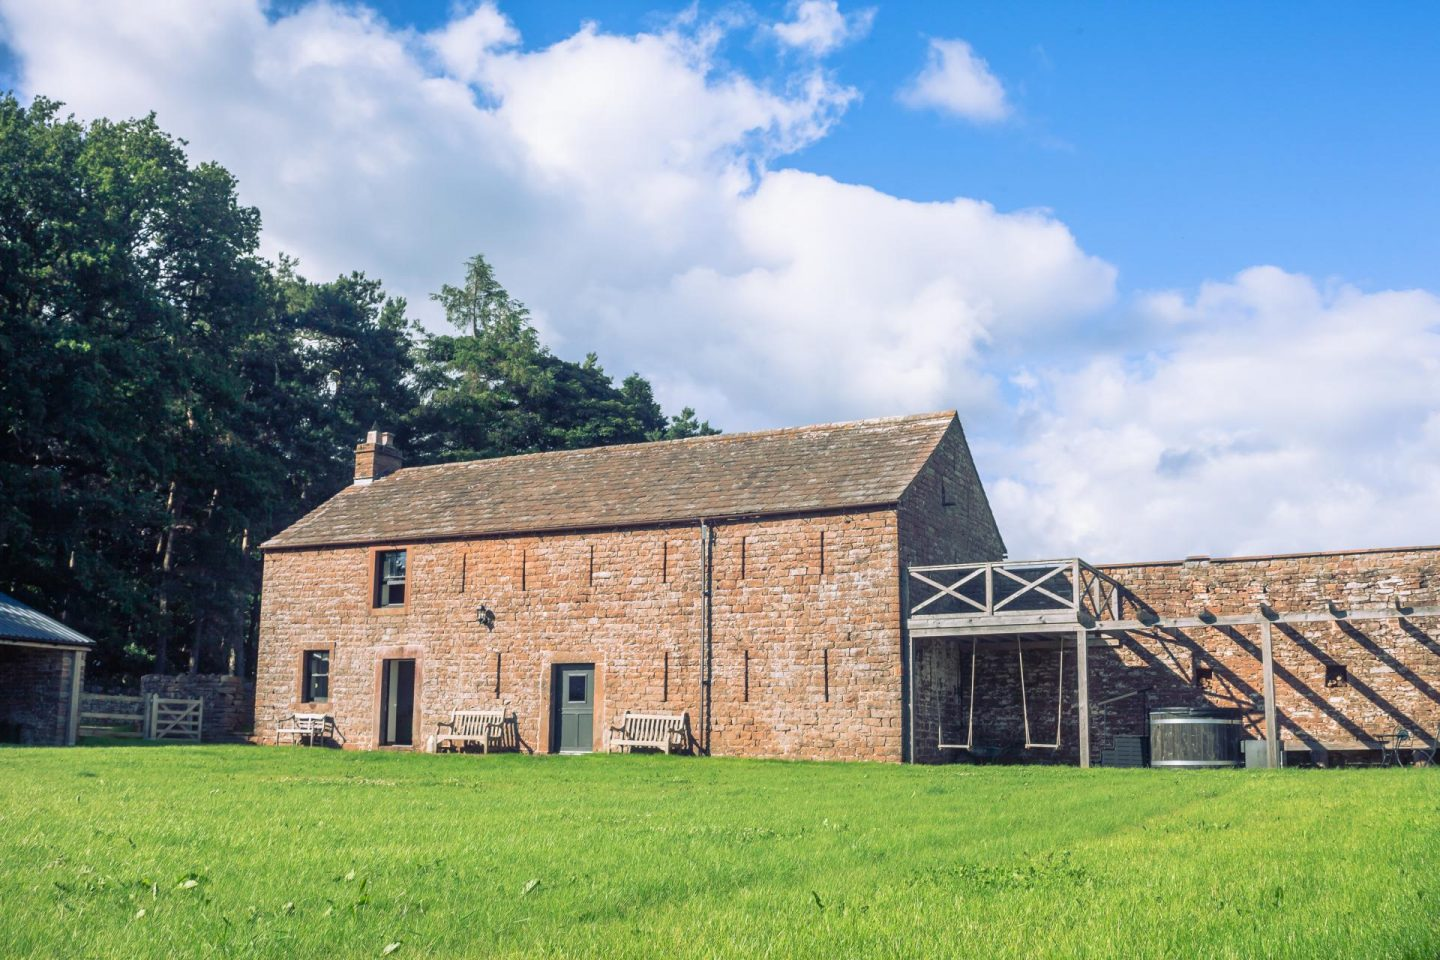 Places to Stay: The Bothy At High Barn, Cumbria, with Canopy and Stars